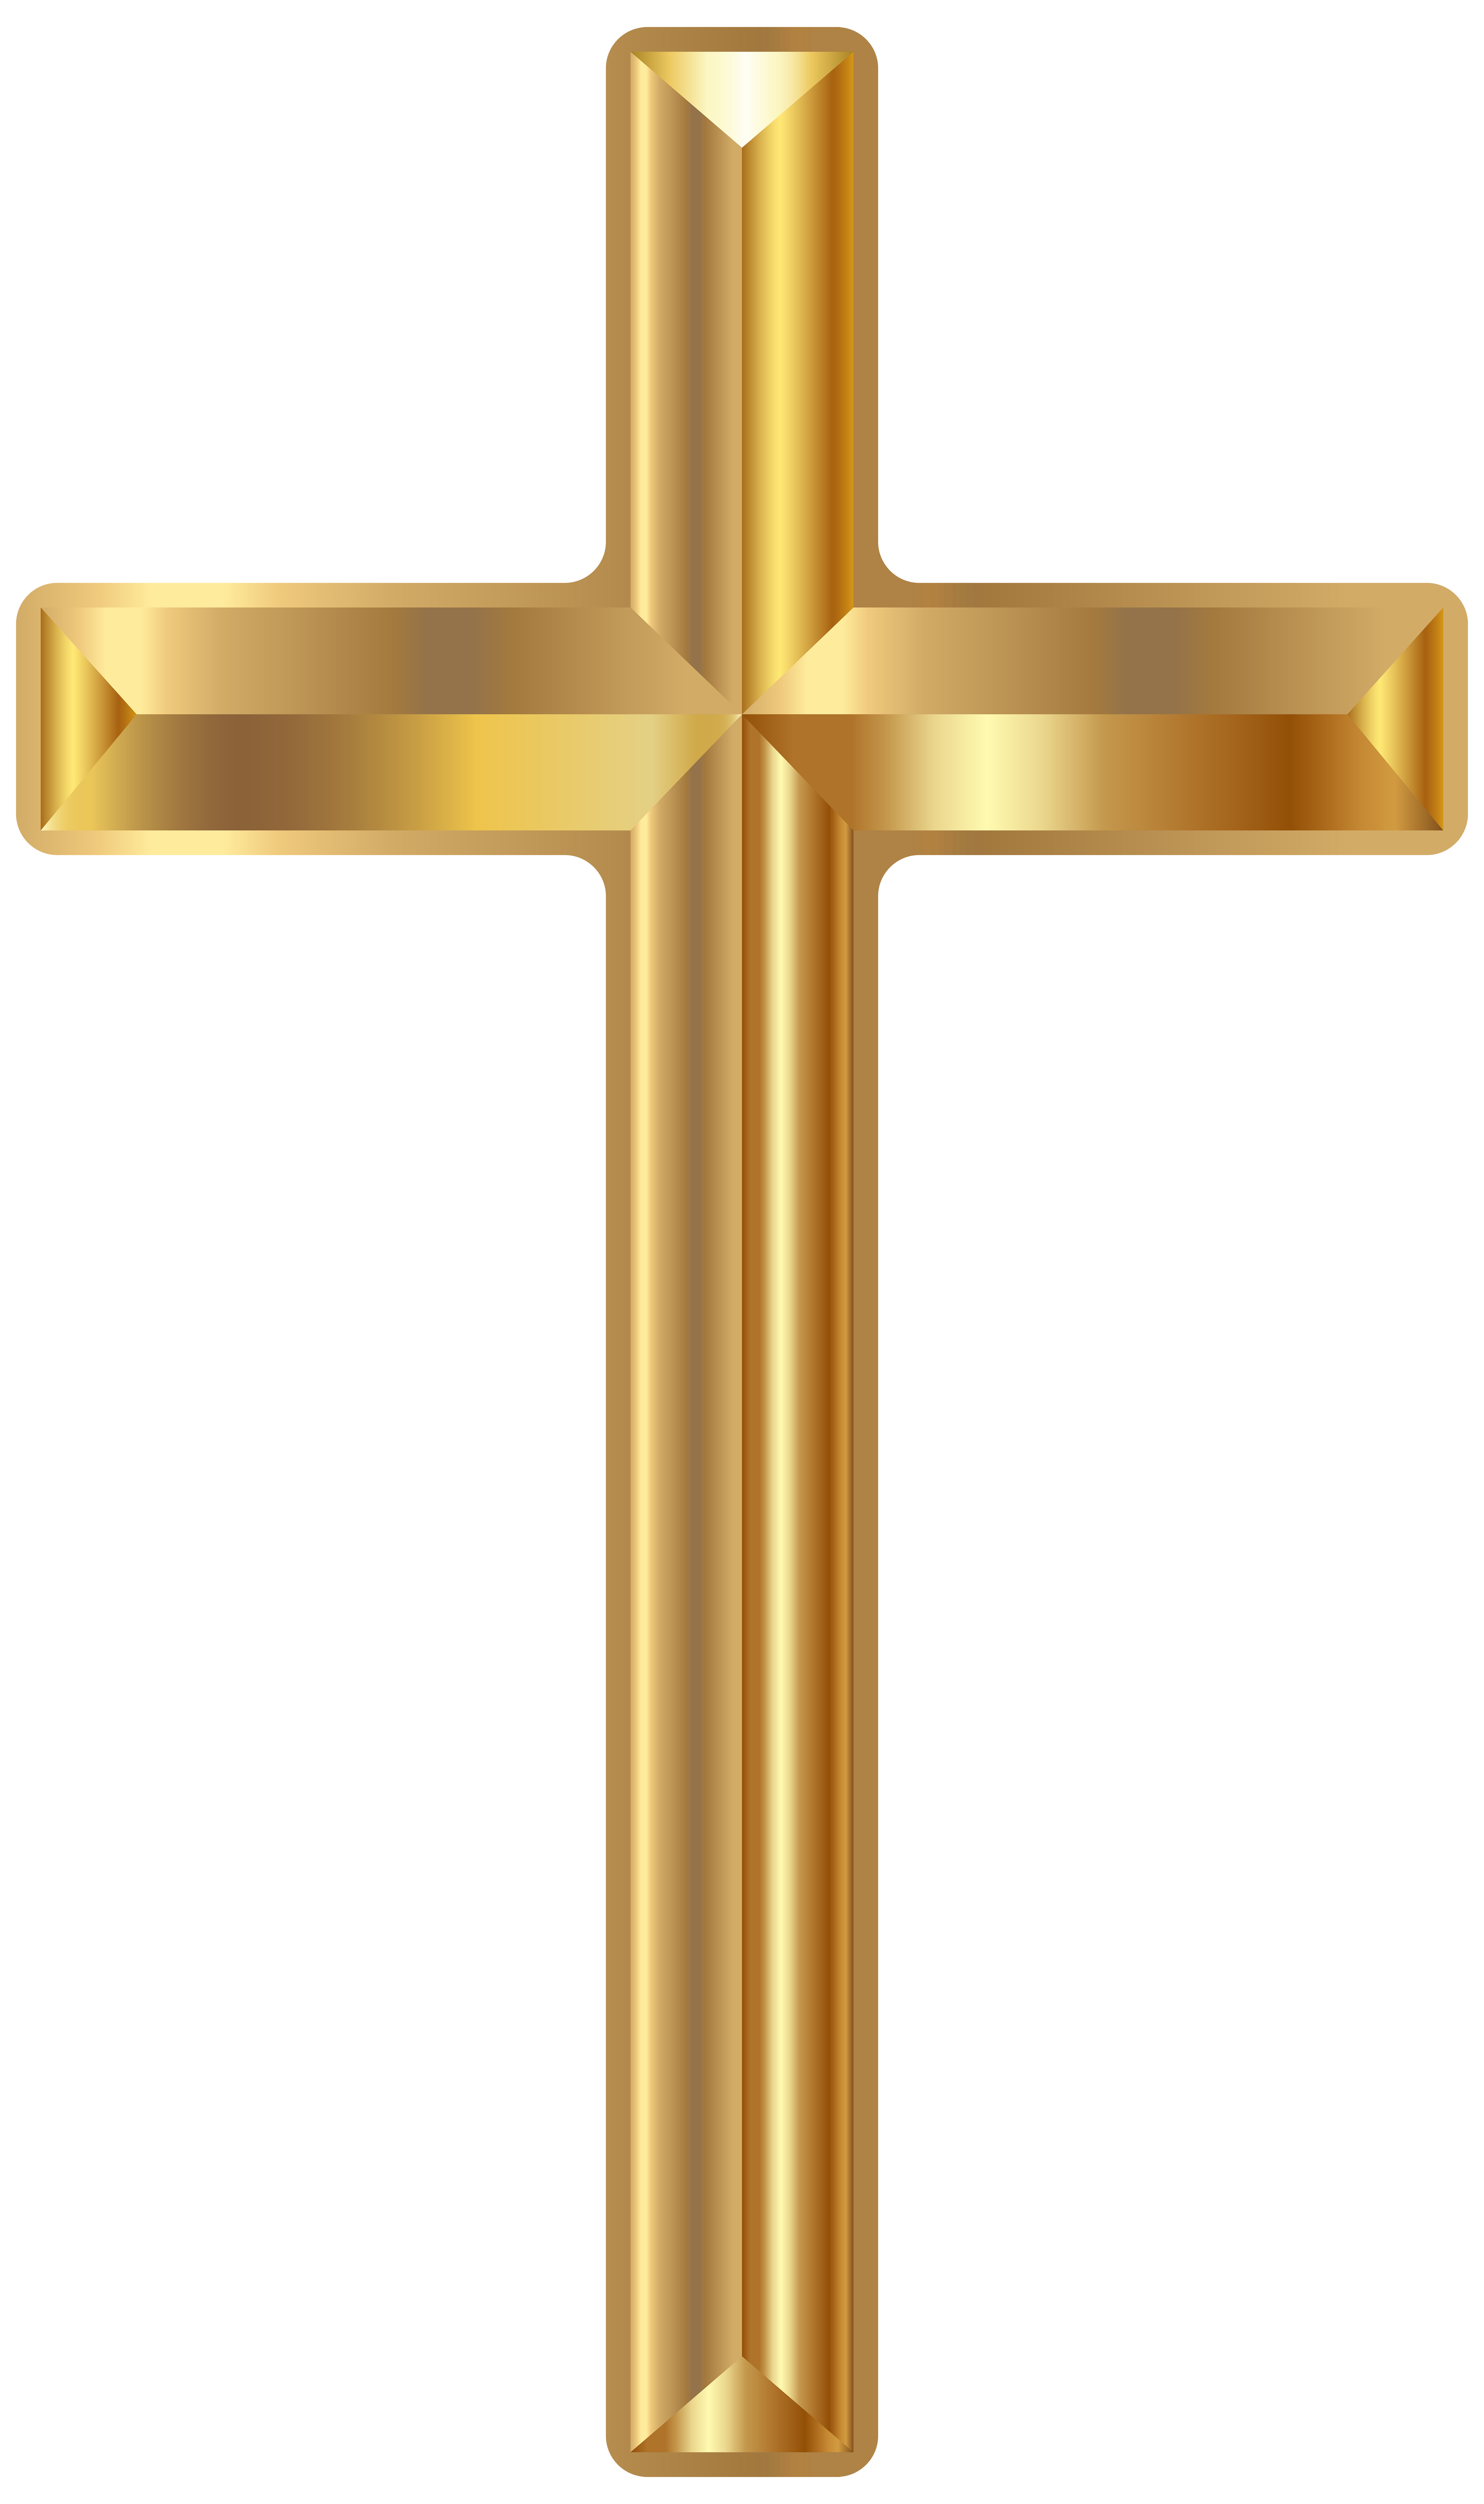 Gold Cross Png Transparent Clip Art Image Gallery Yopriceville High Quality Images And Transparent Png Free Clip Cross Wallpaper Cross Pictures Gold Cross